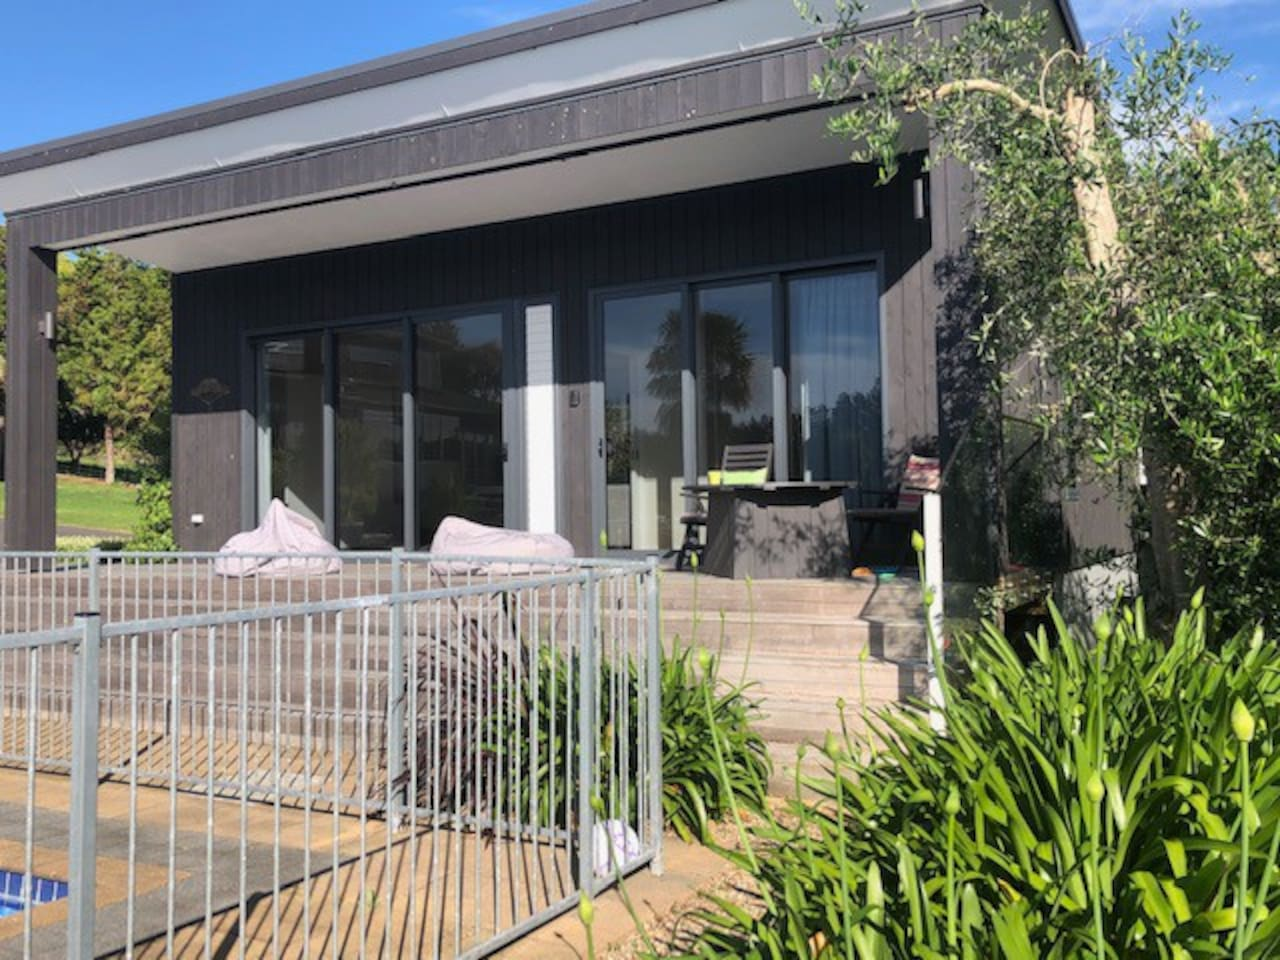 Welcome to our quality purpose-built apartment for 1-6 people in an idyllic setting. Fully self-contained for family groups or business guests. Easy access to the wider Bay Of Plenty amenities,  attractions and the new Omokoroa-Bethlehem bike trail.